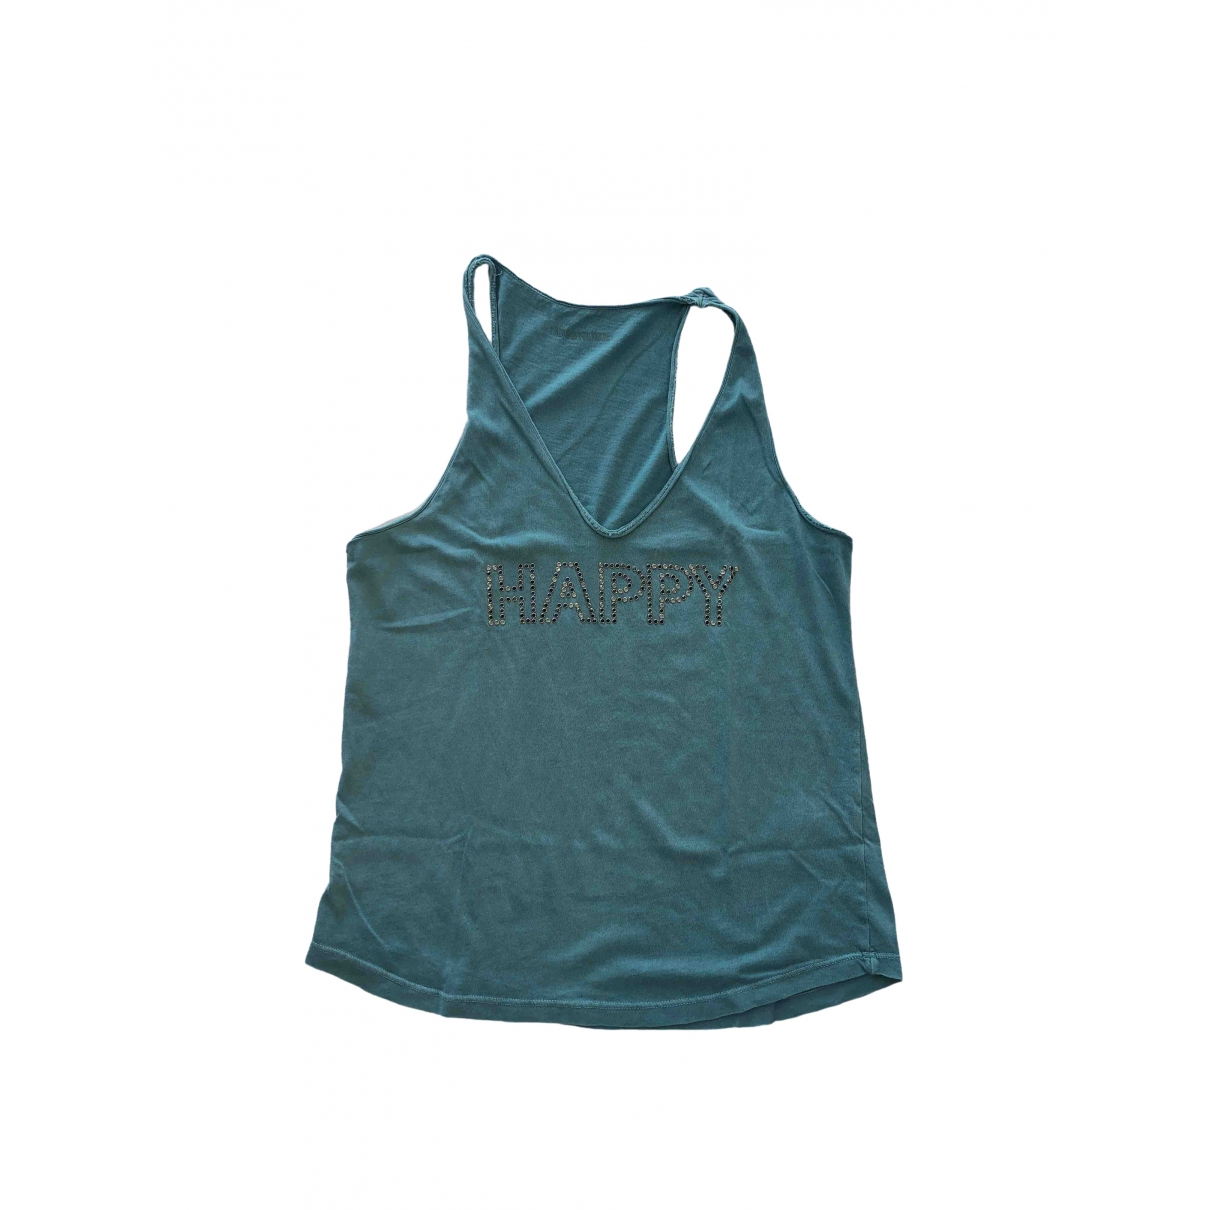 Zadig & Voltaire \N Turquoise Cotton  top for Women M International